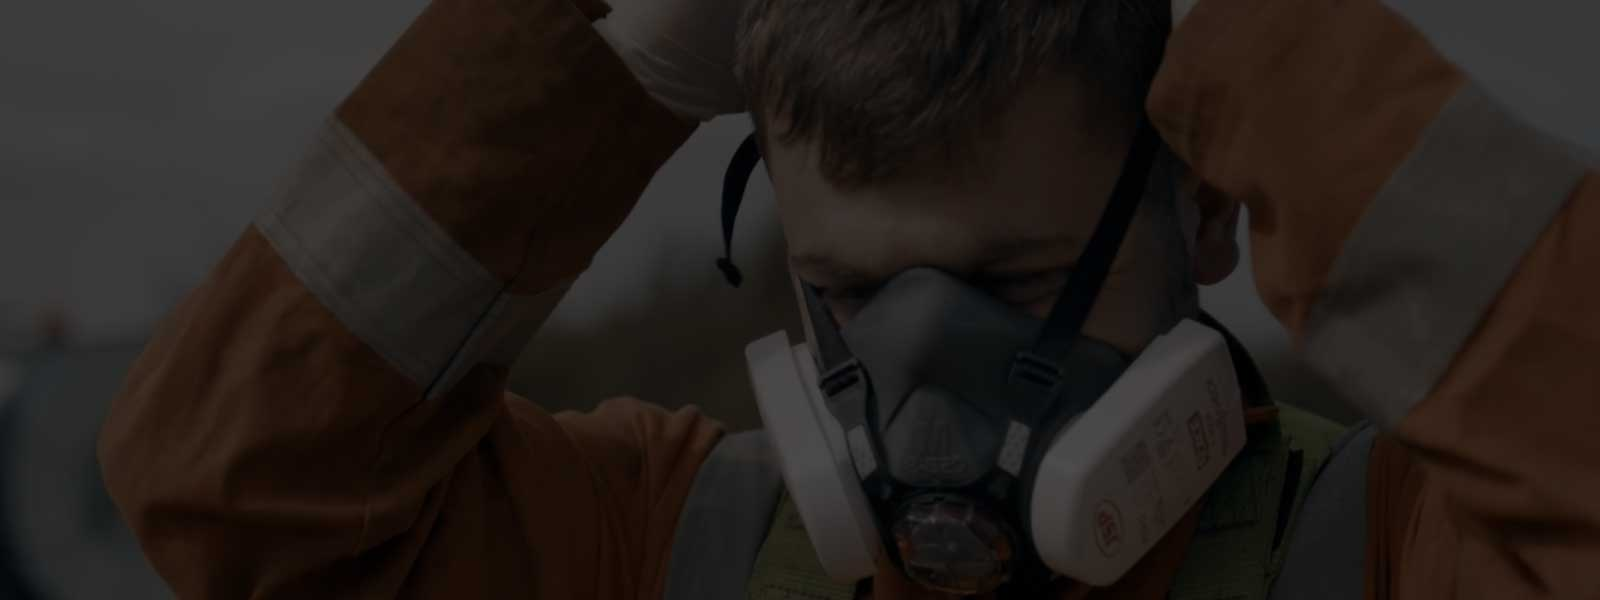 Putting on PPE Breathing Gear